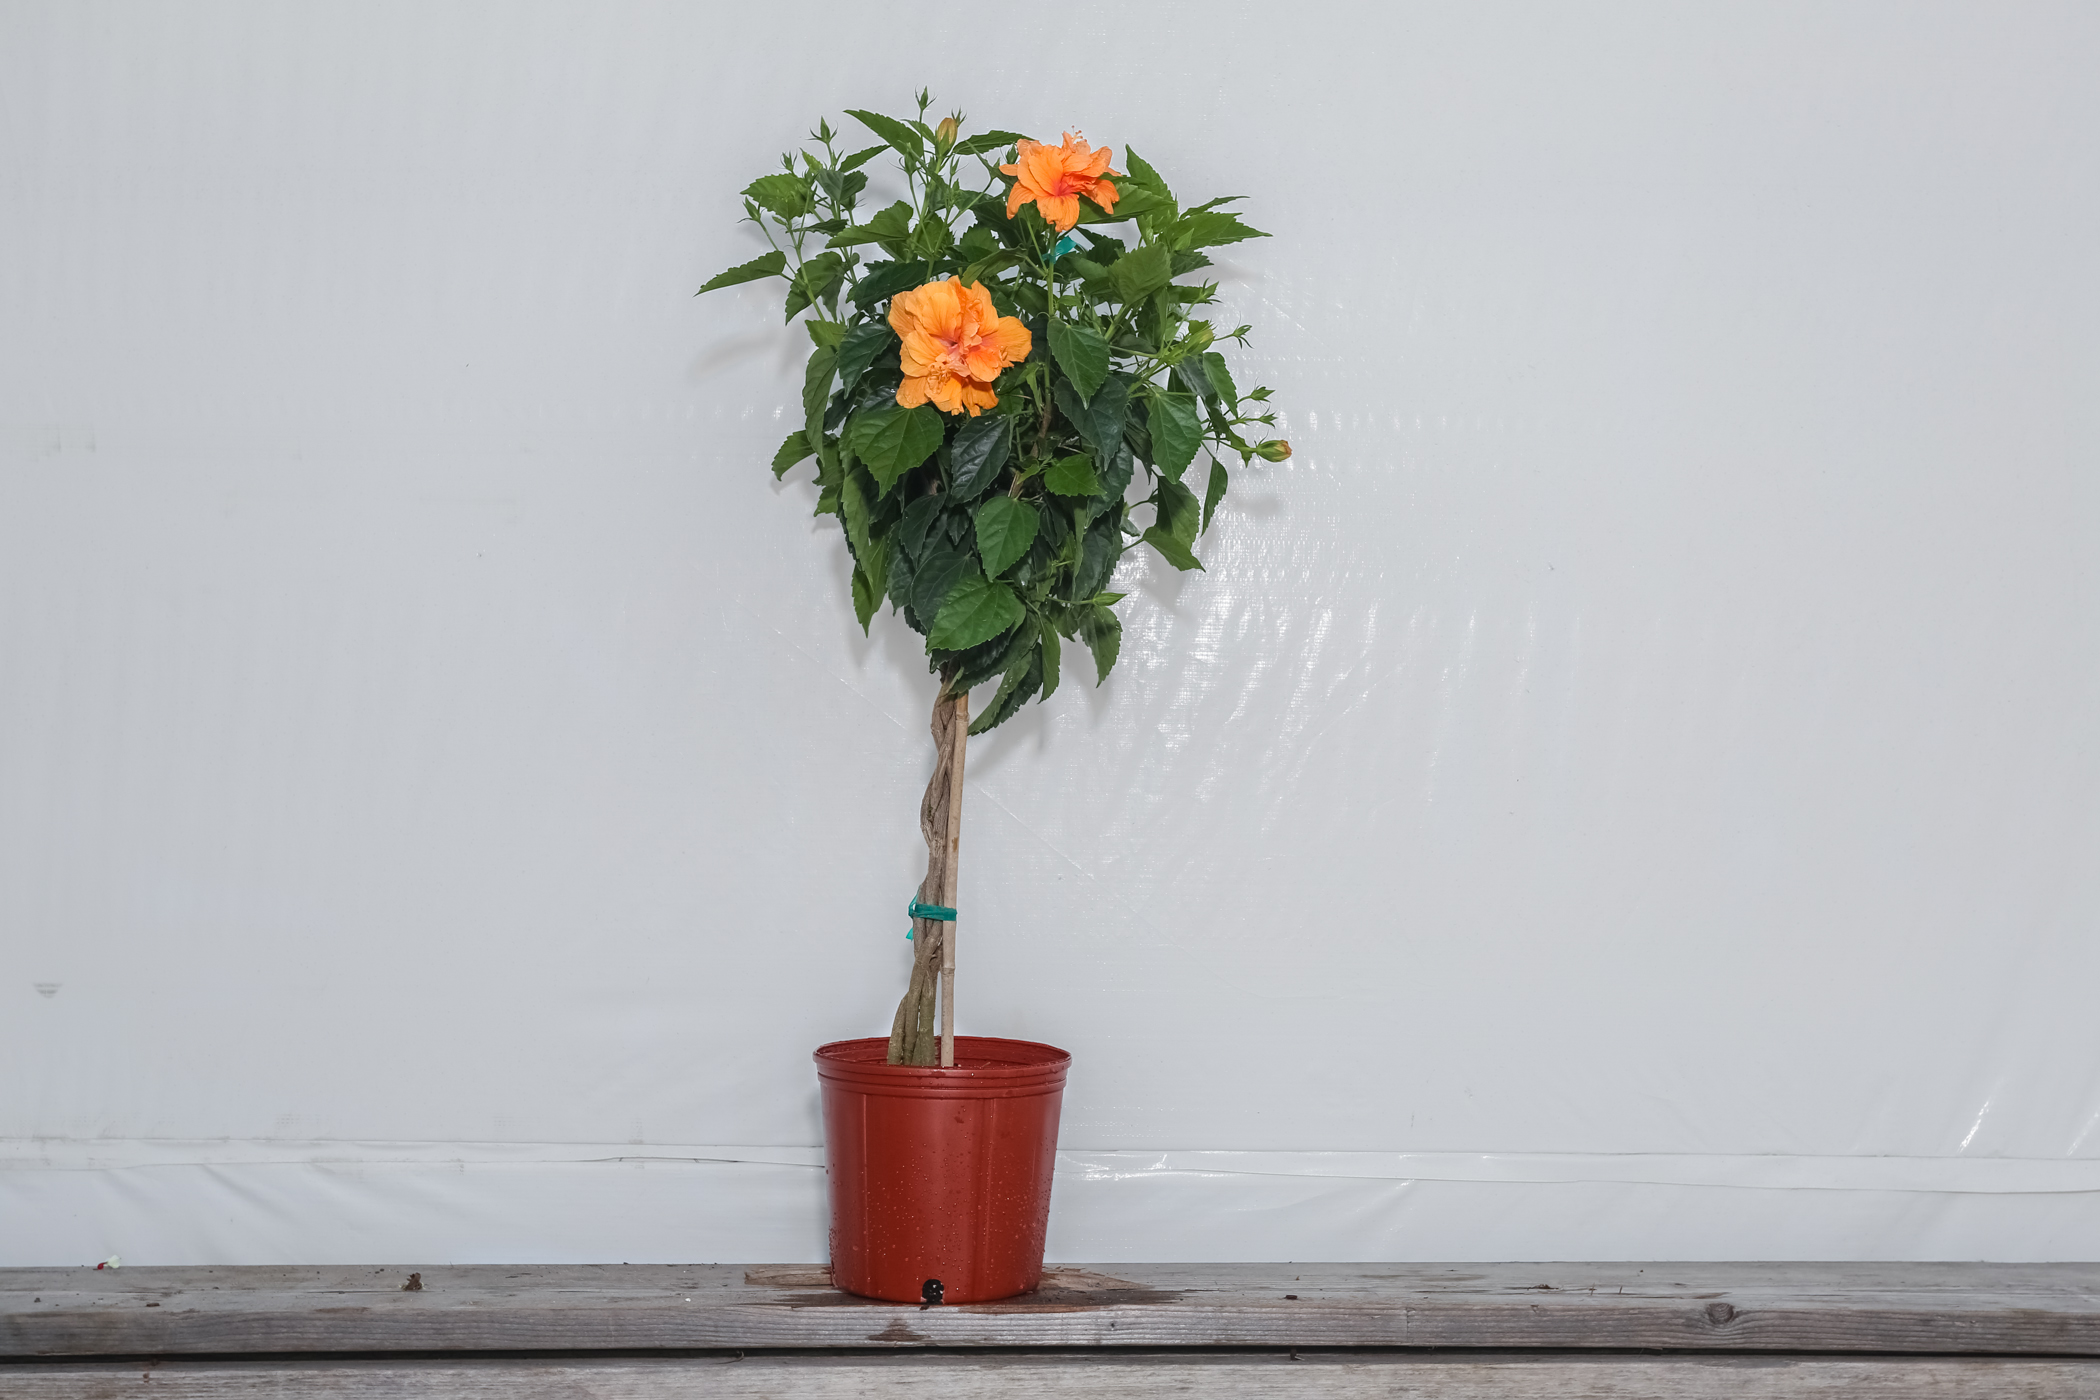 Hibiscus Standard Double Peach Tree 7 Gallon